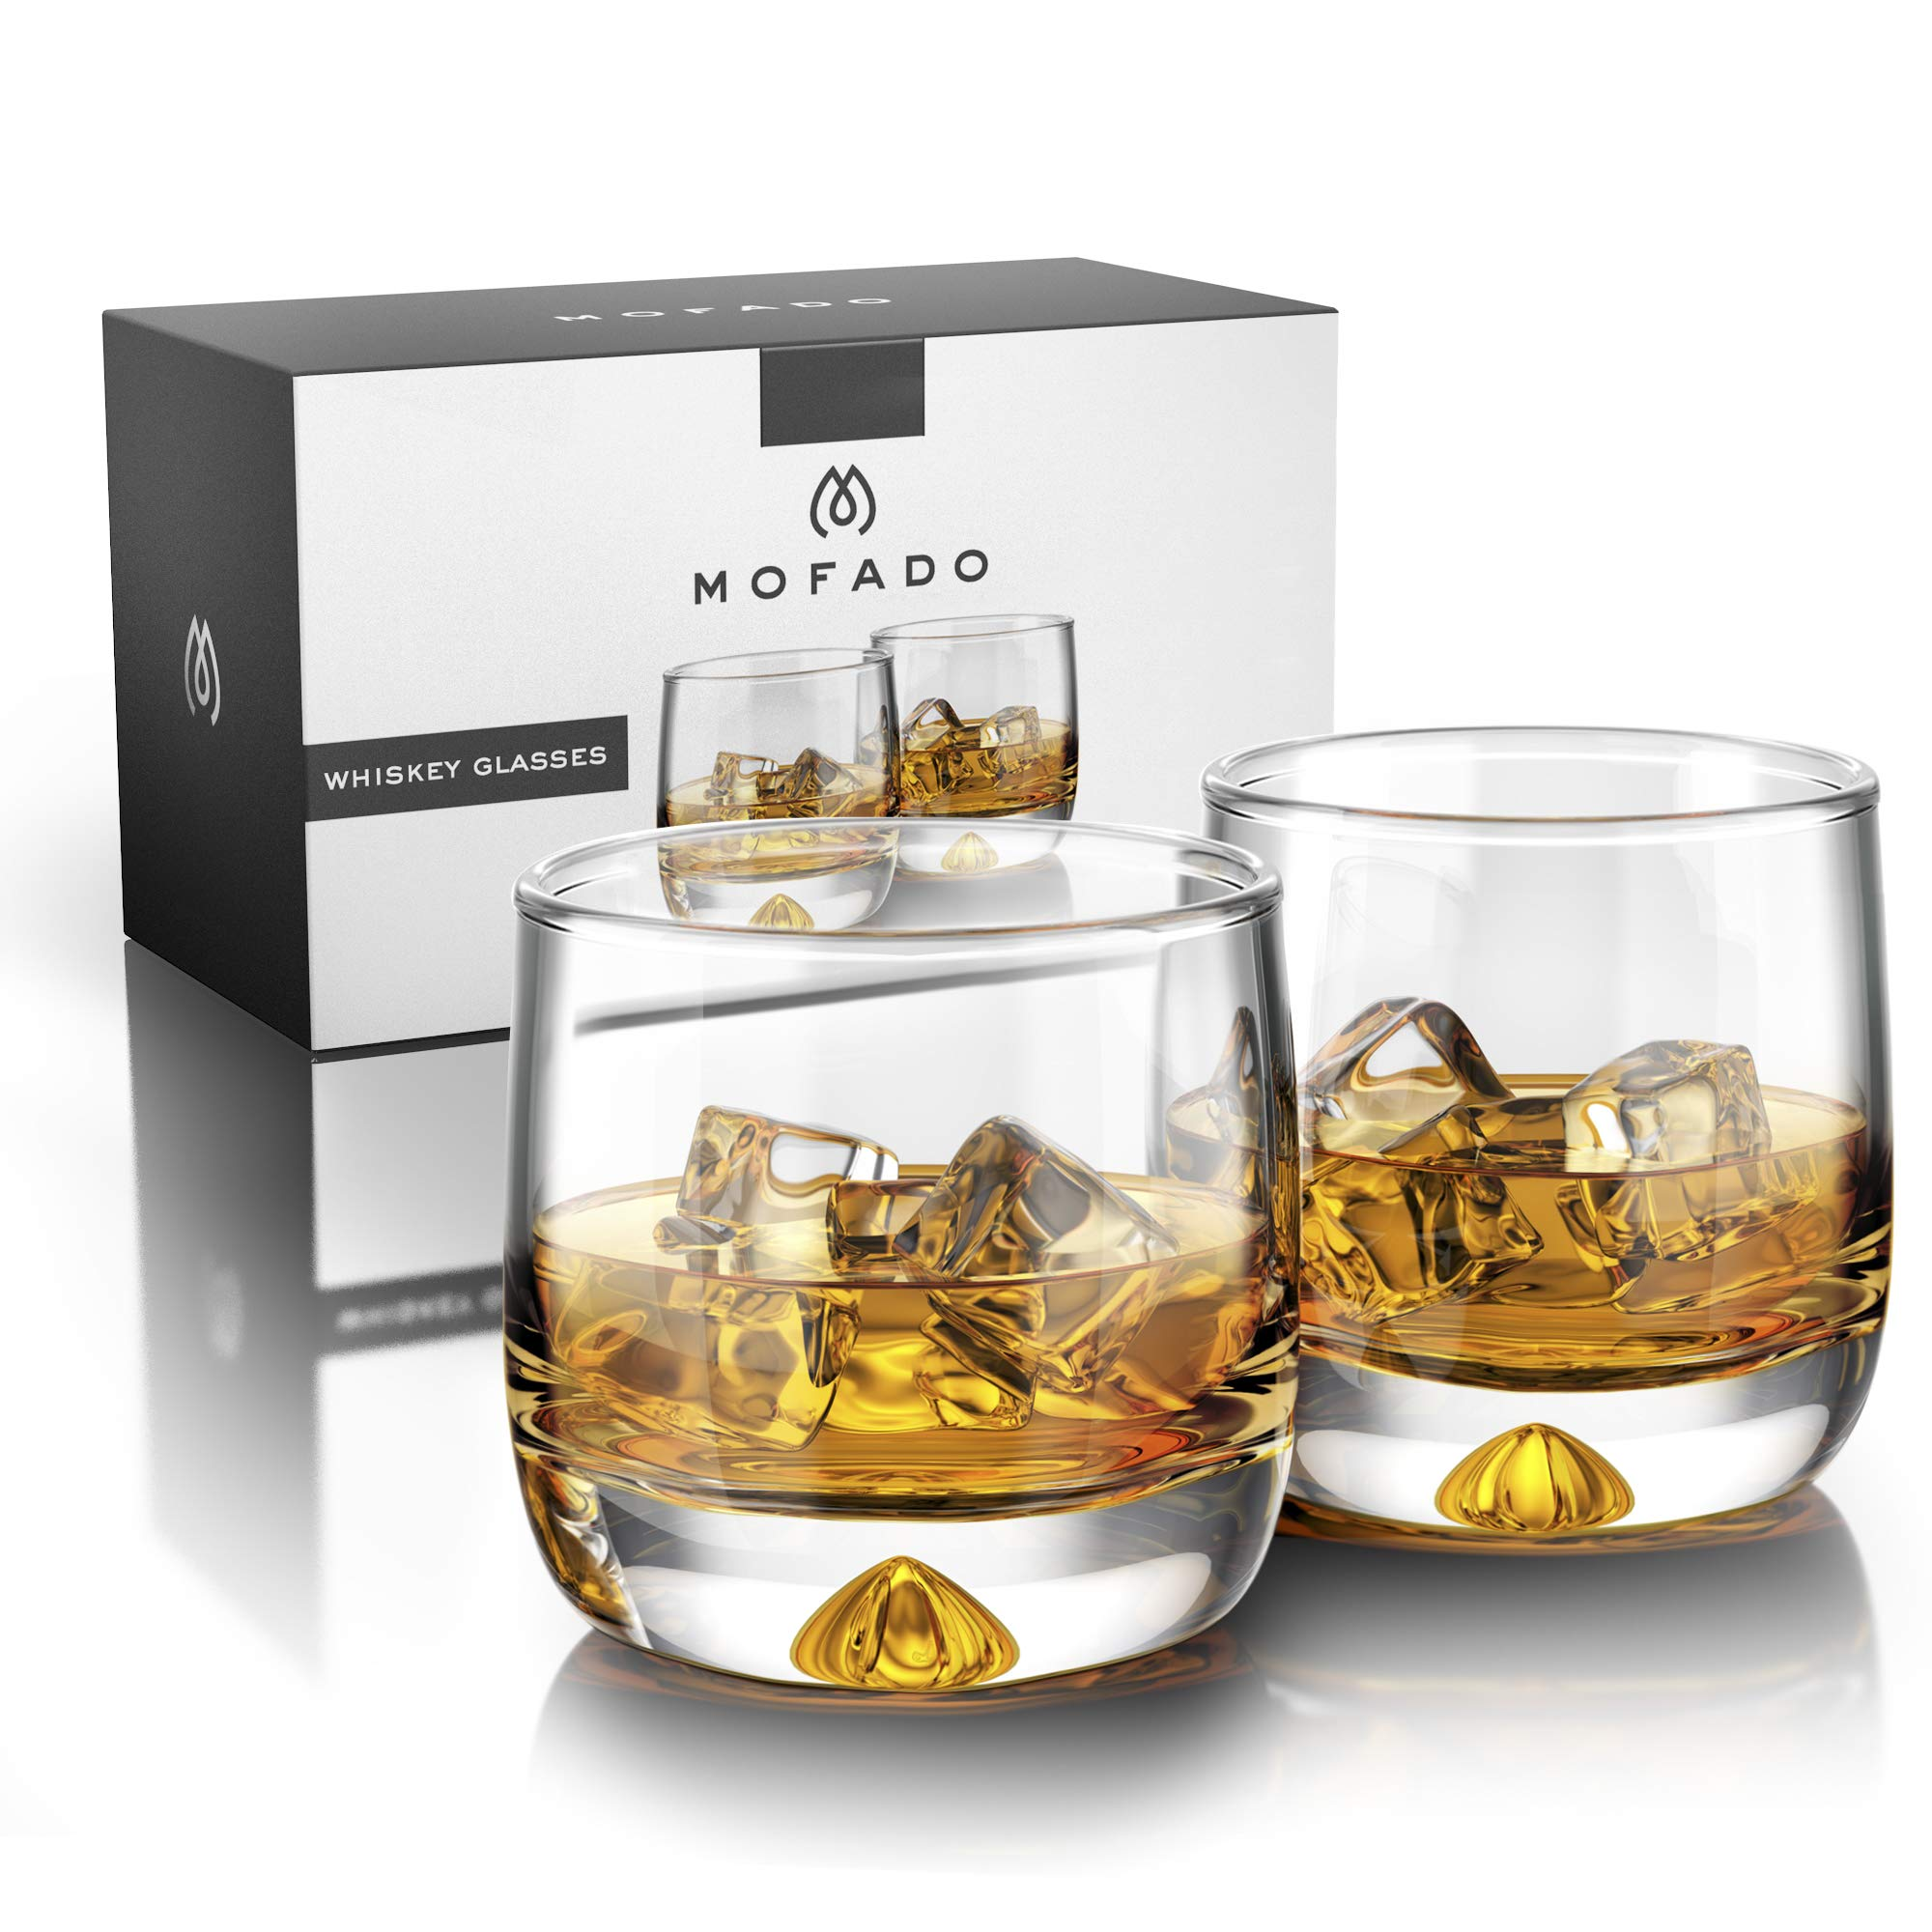 Premium Whiskey Glasses - Large - 12oz Set of 2 - Lead Free Hand Blown Crystal - Thick Weighted Bottom - Seamless Handmade Design - Perfect for Scotch, Bourbon, Manhattans, Old Fashioned's, Cocktails. by Mofado (Image #3)